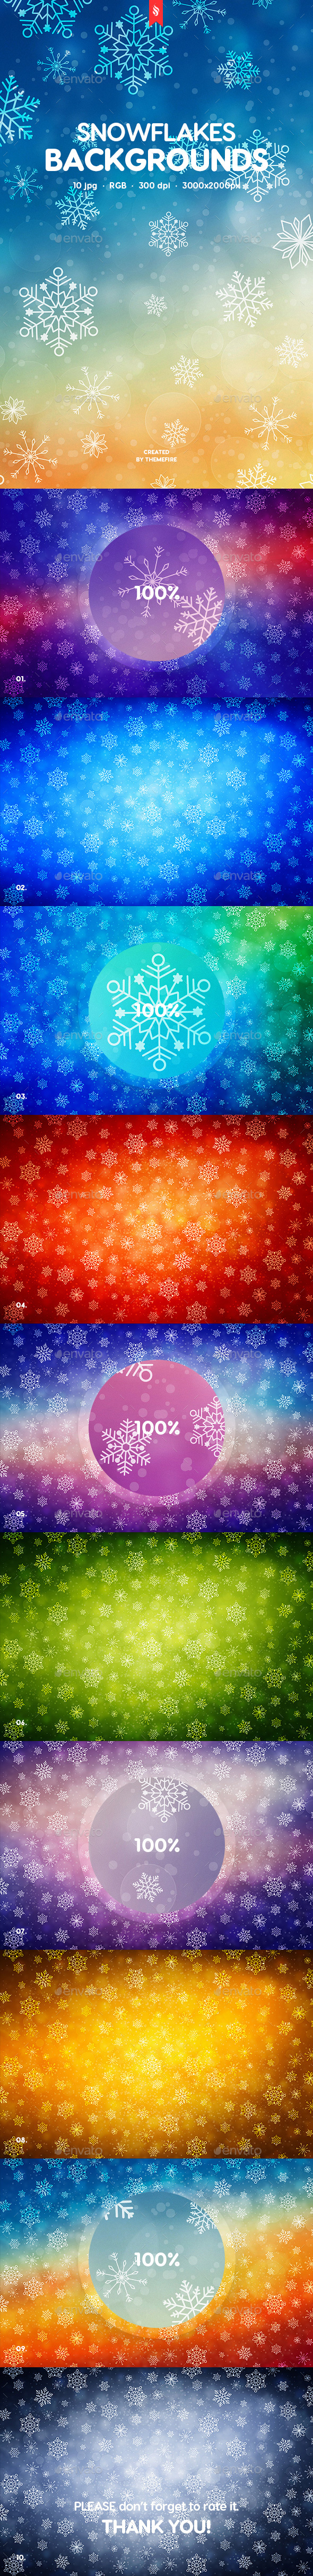 Snowflakes Backgrounds - Backgrounds Graphics